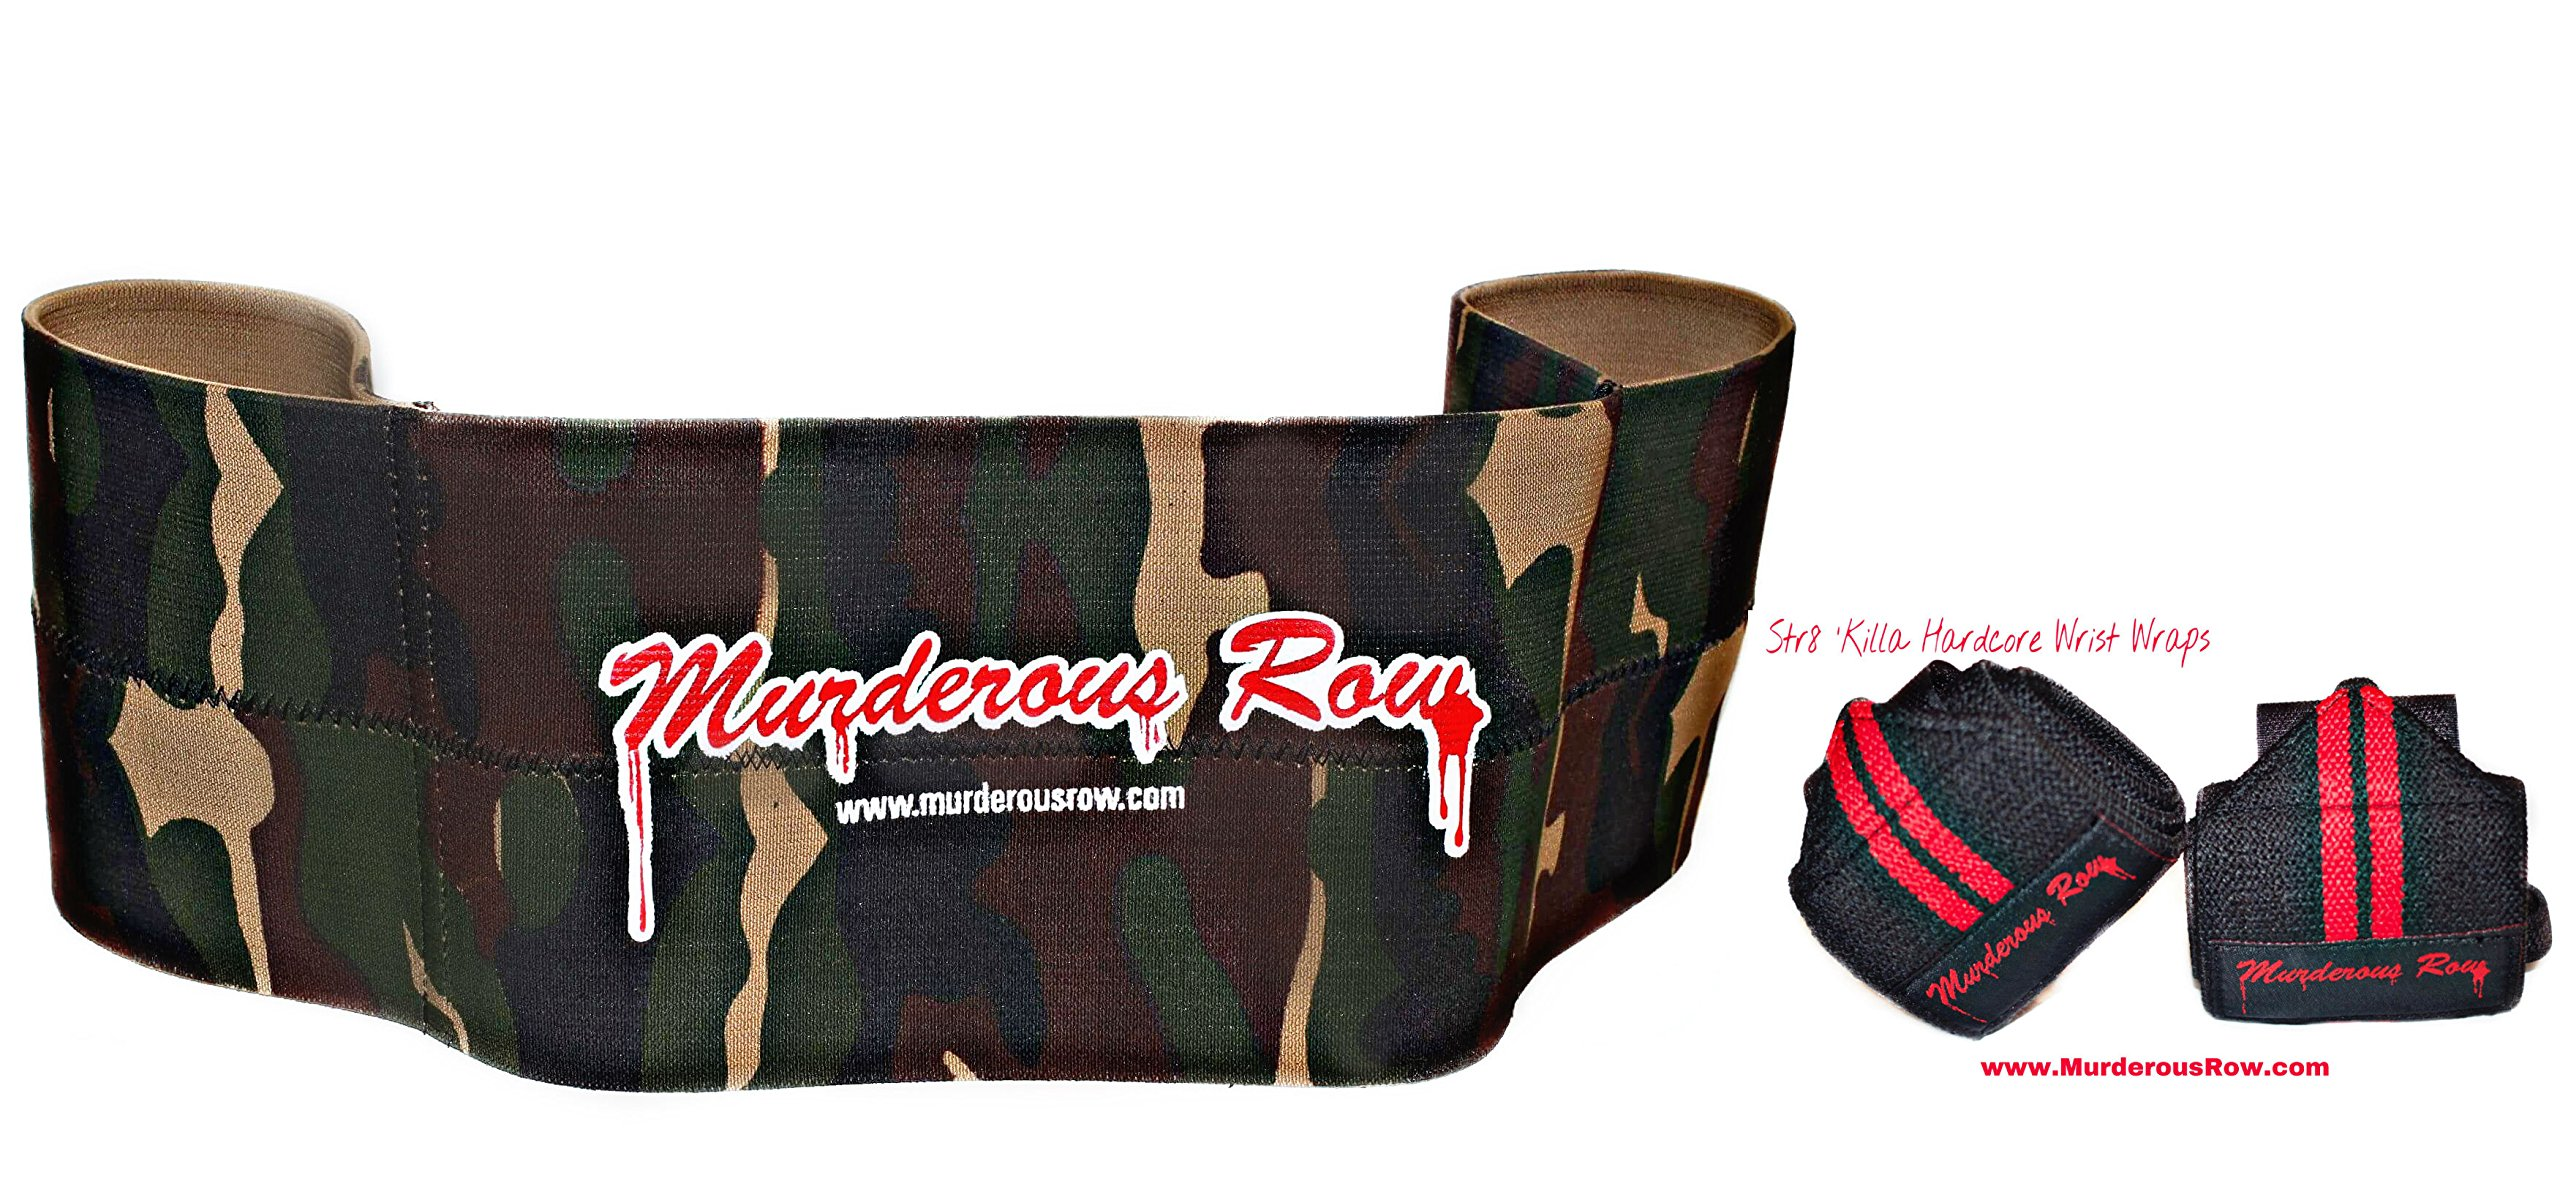 www.MurderousRow.com MURDEROUS ROW Bench Press Sling Shot (2XL, 221-300lbs) DESERT STORM CAMO LIMITED EDITION + STR8 'KILLA Hardcore Wrist Wraps